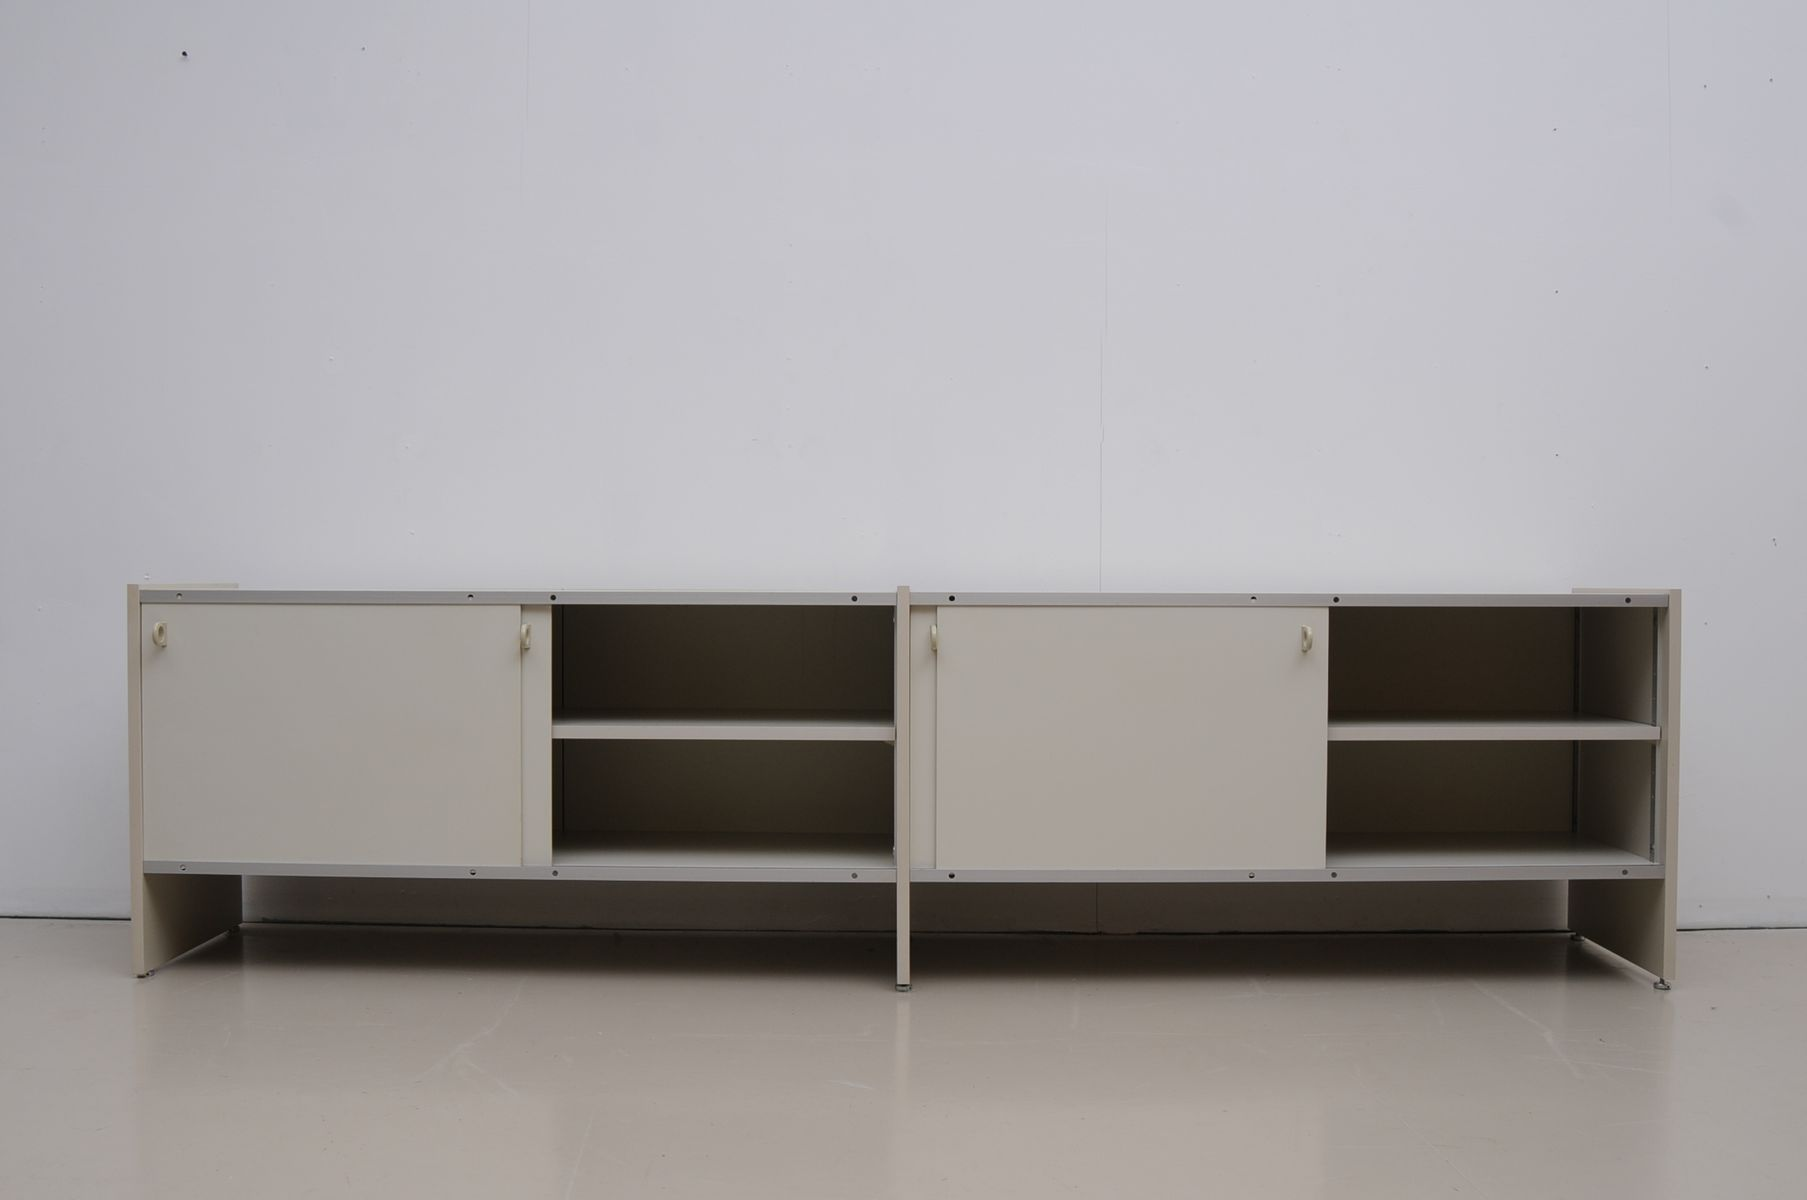 rz 57 sideboard by dieter rams for otto zapf 1957 for. Black Bedroom Furniture Sets. Home Design Ideas